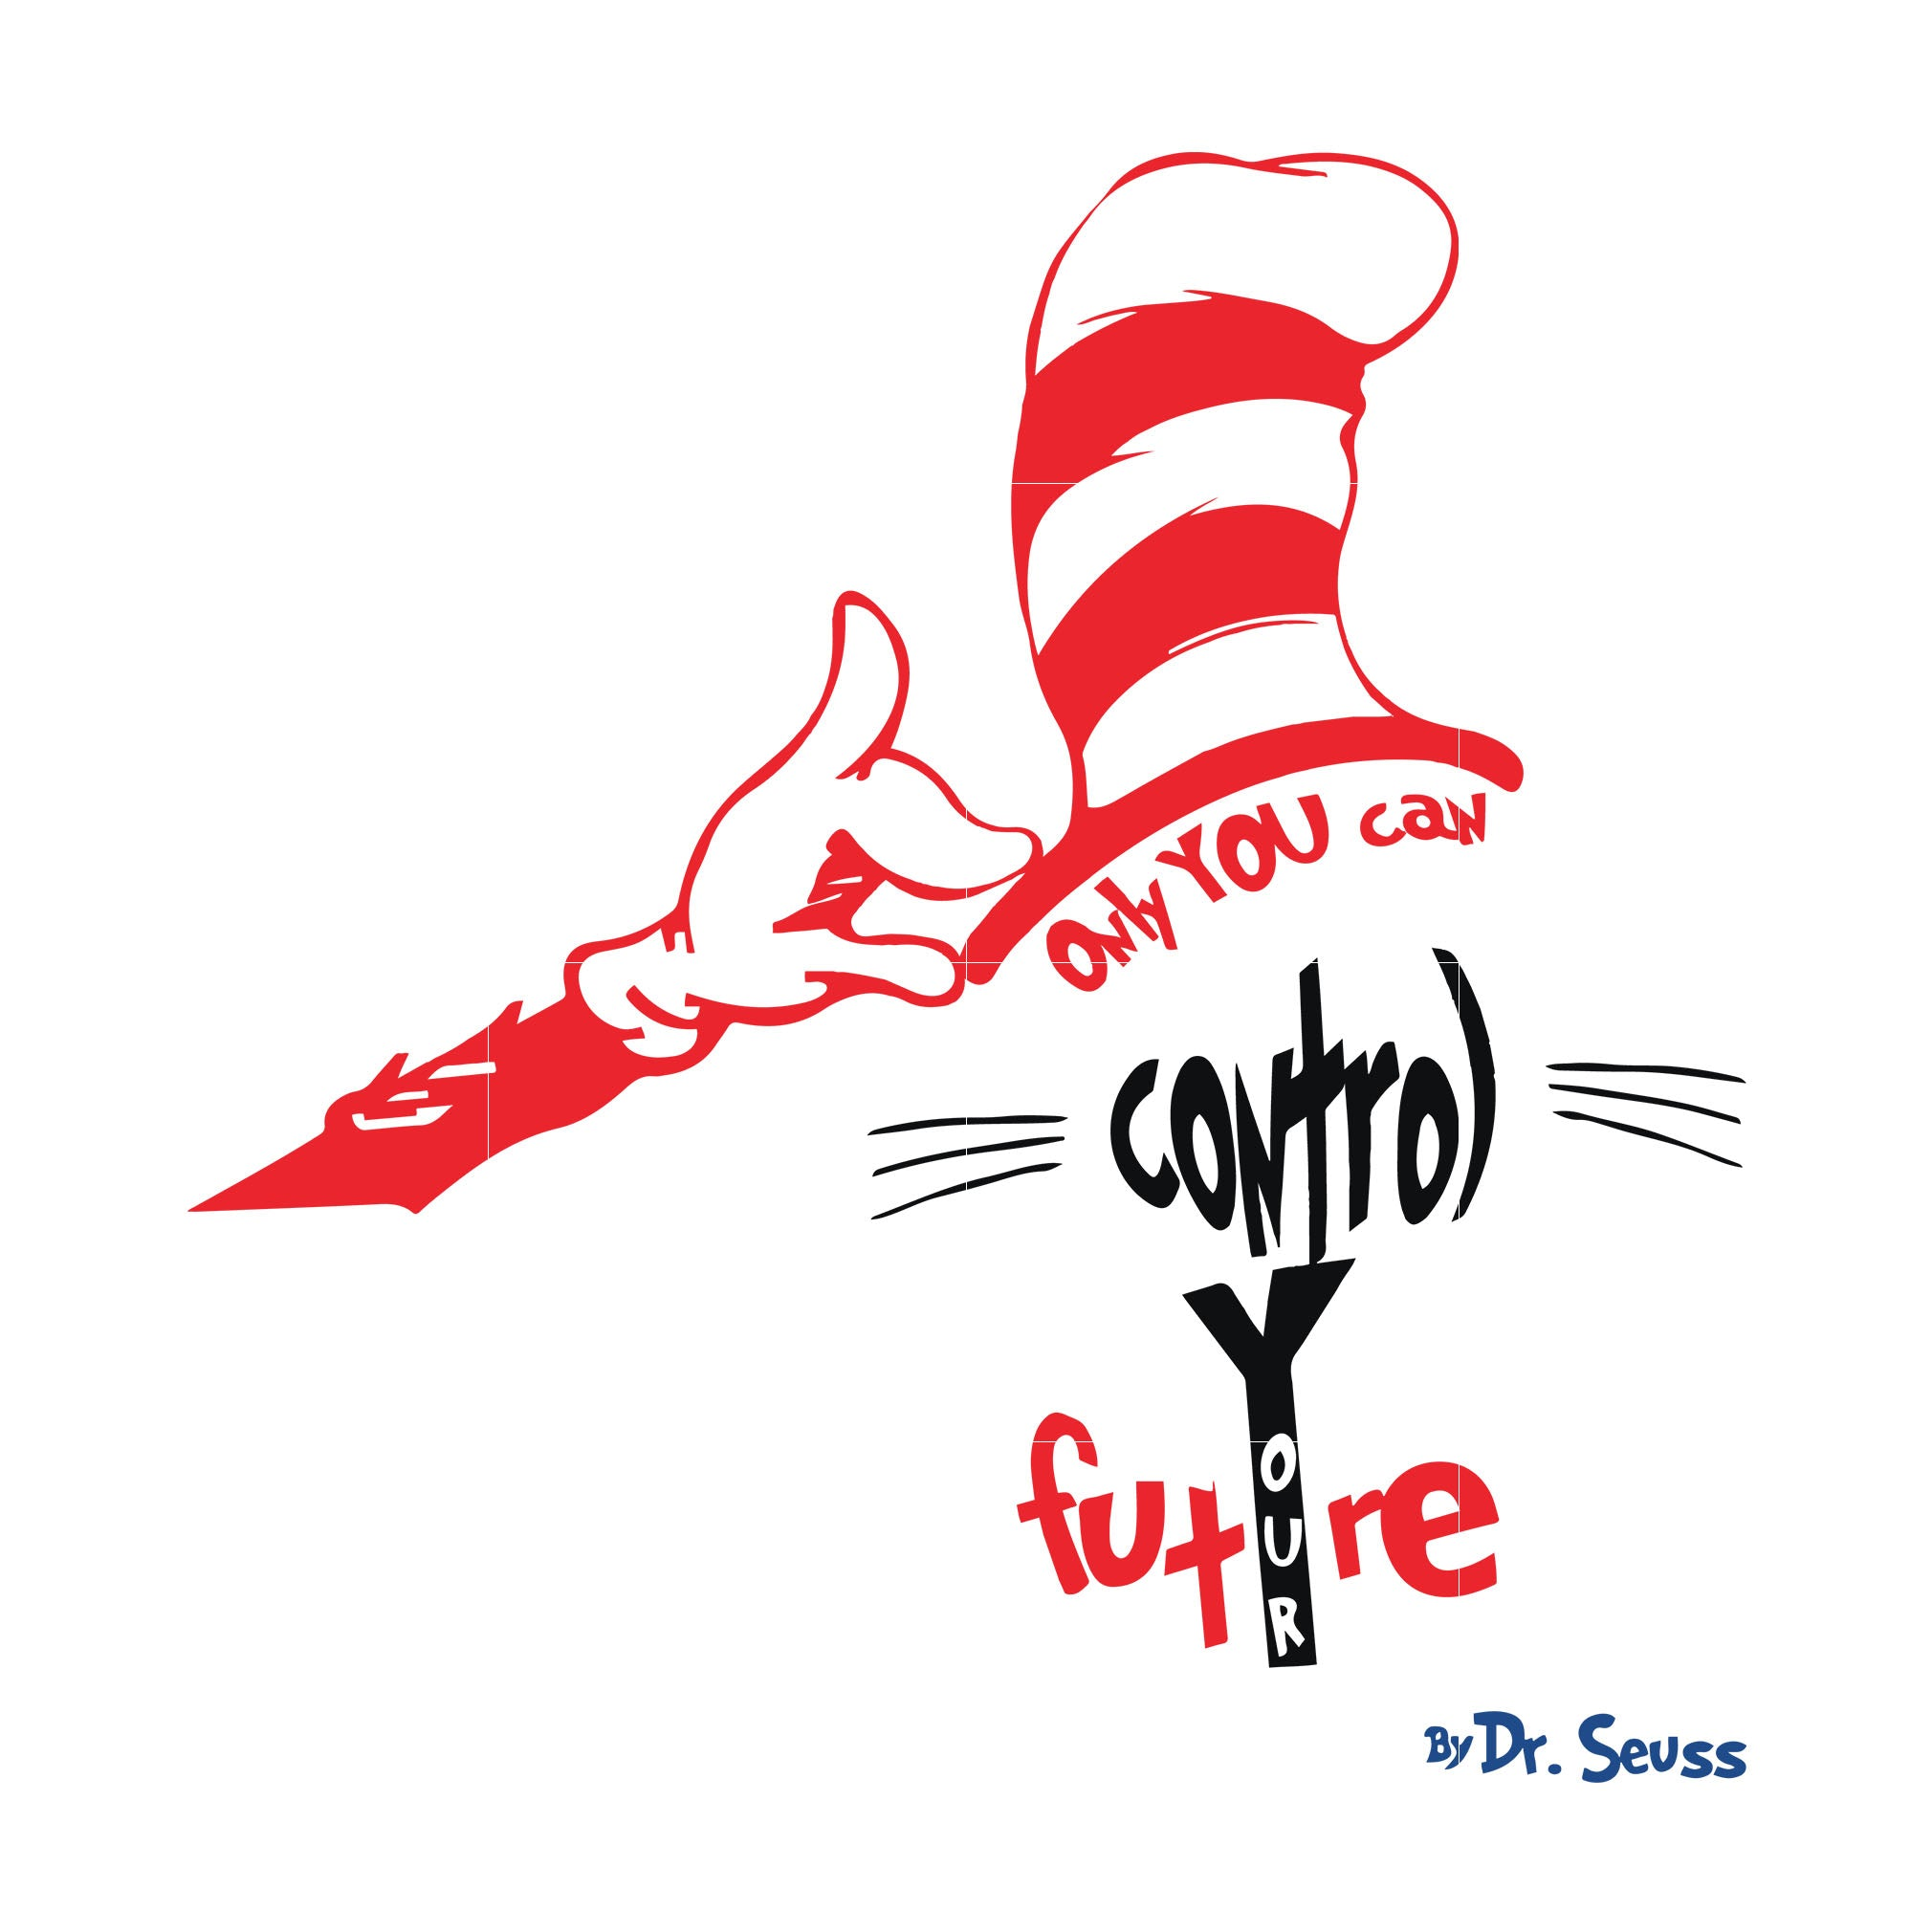 Only you can control your future svg, dr seuss svg, dr seuss quotes, digital file